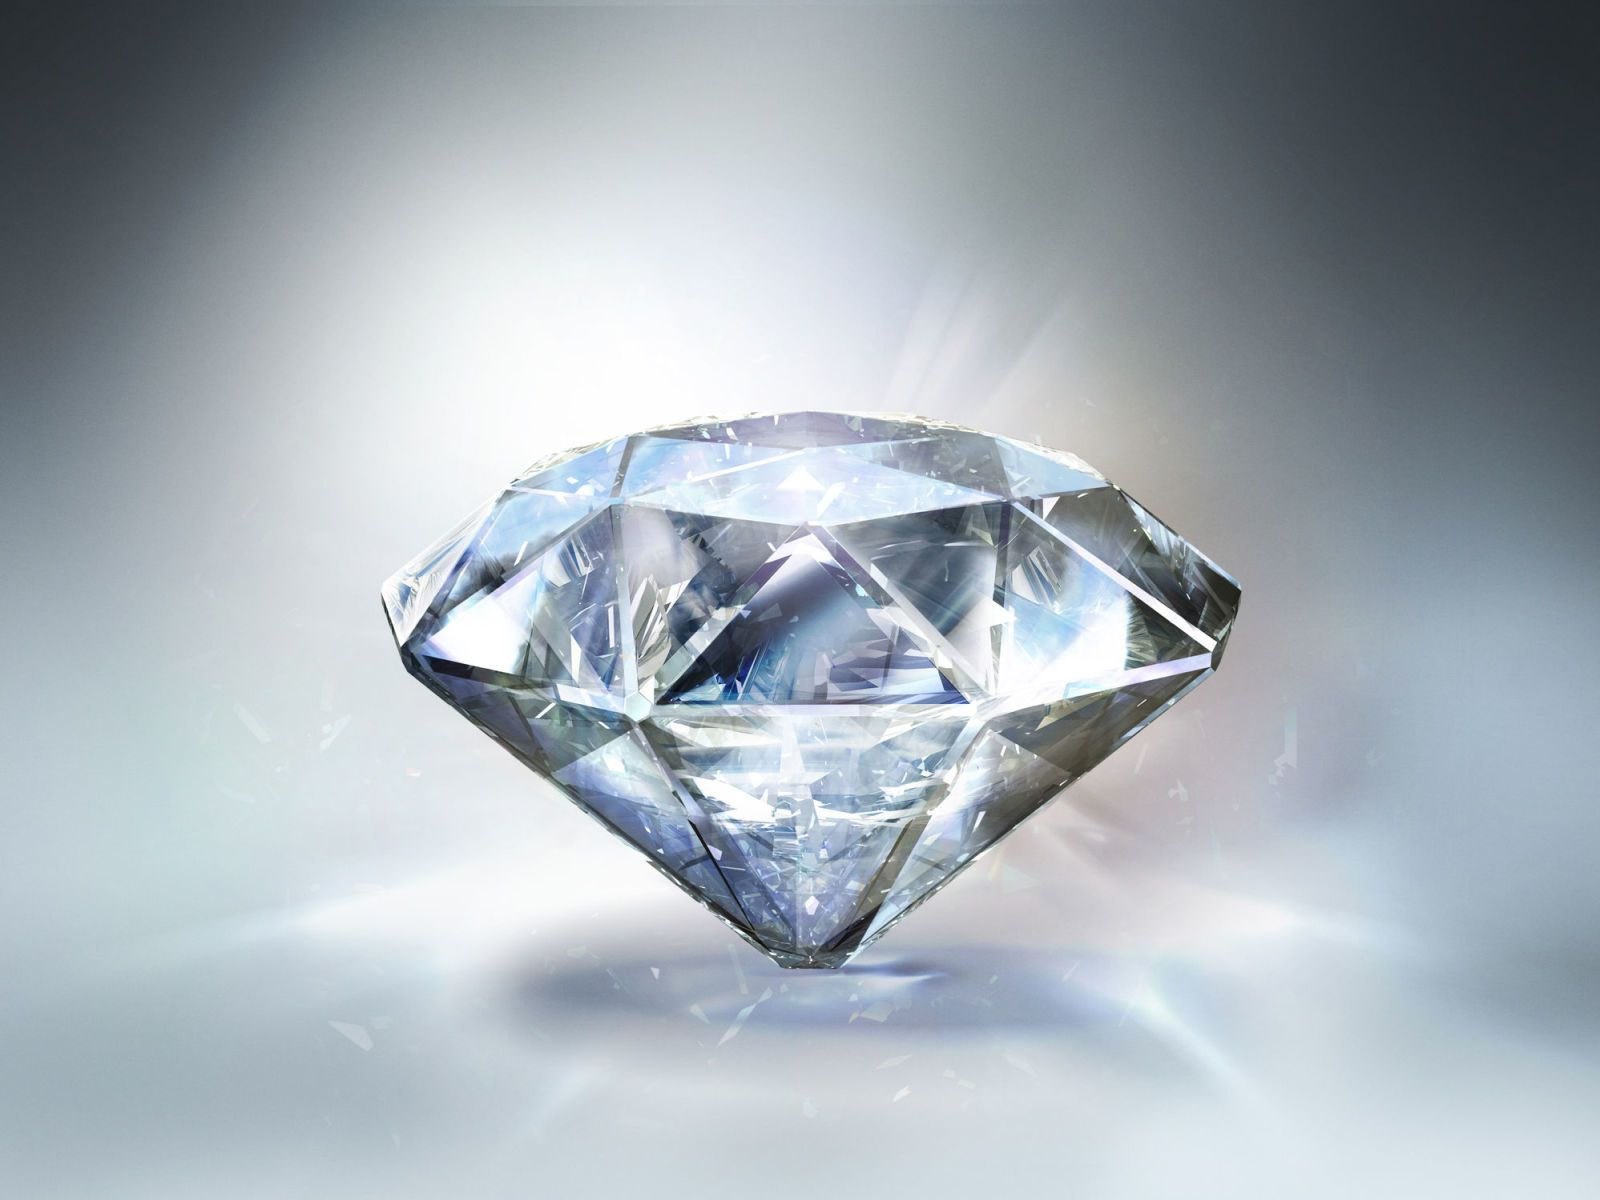 Scientists Turn Nuclear Waste Into Long-Lived Diamond Batteries